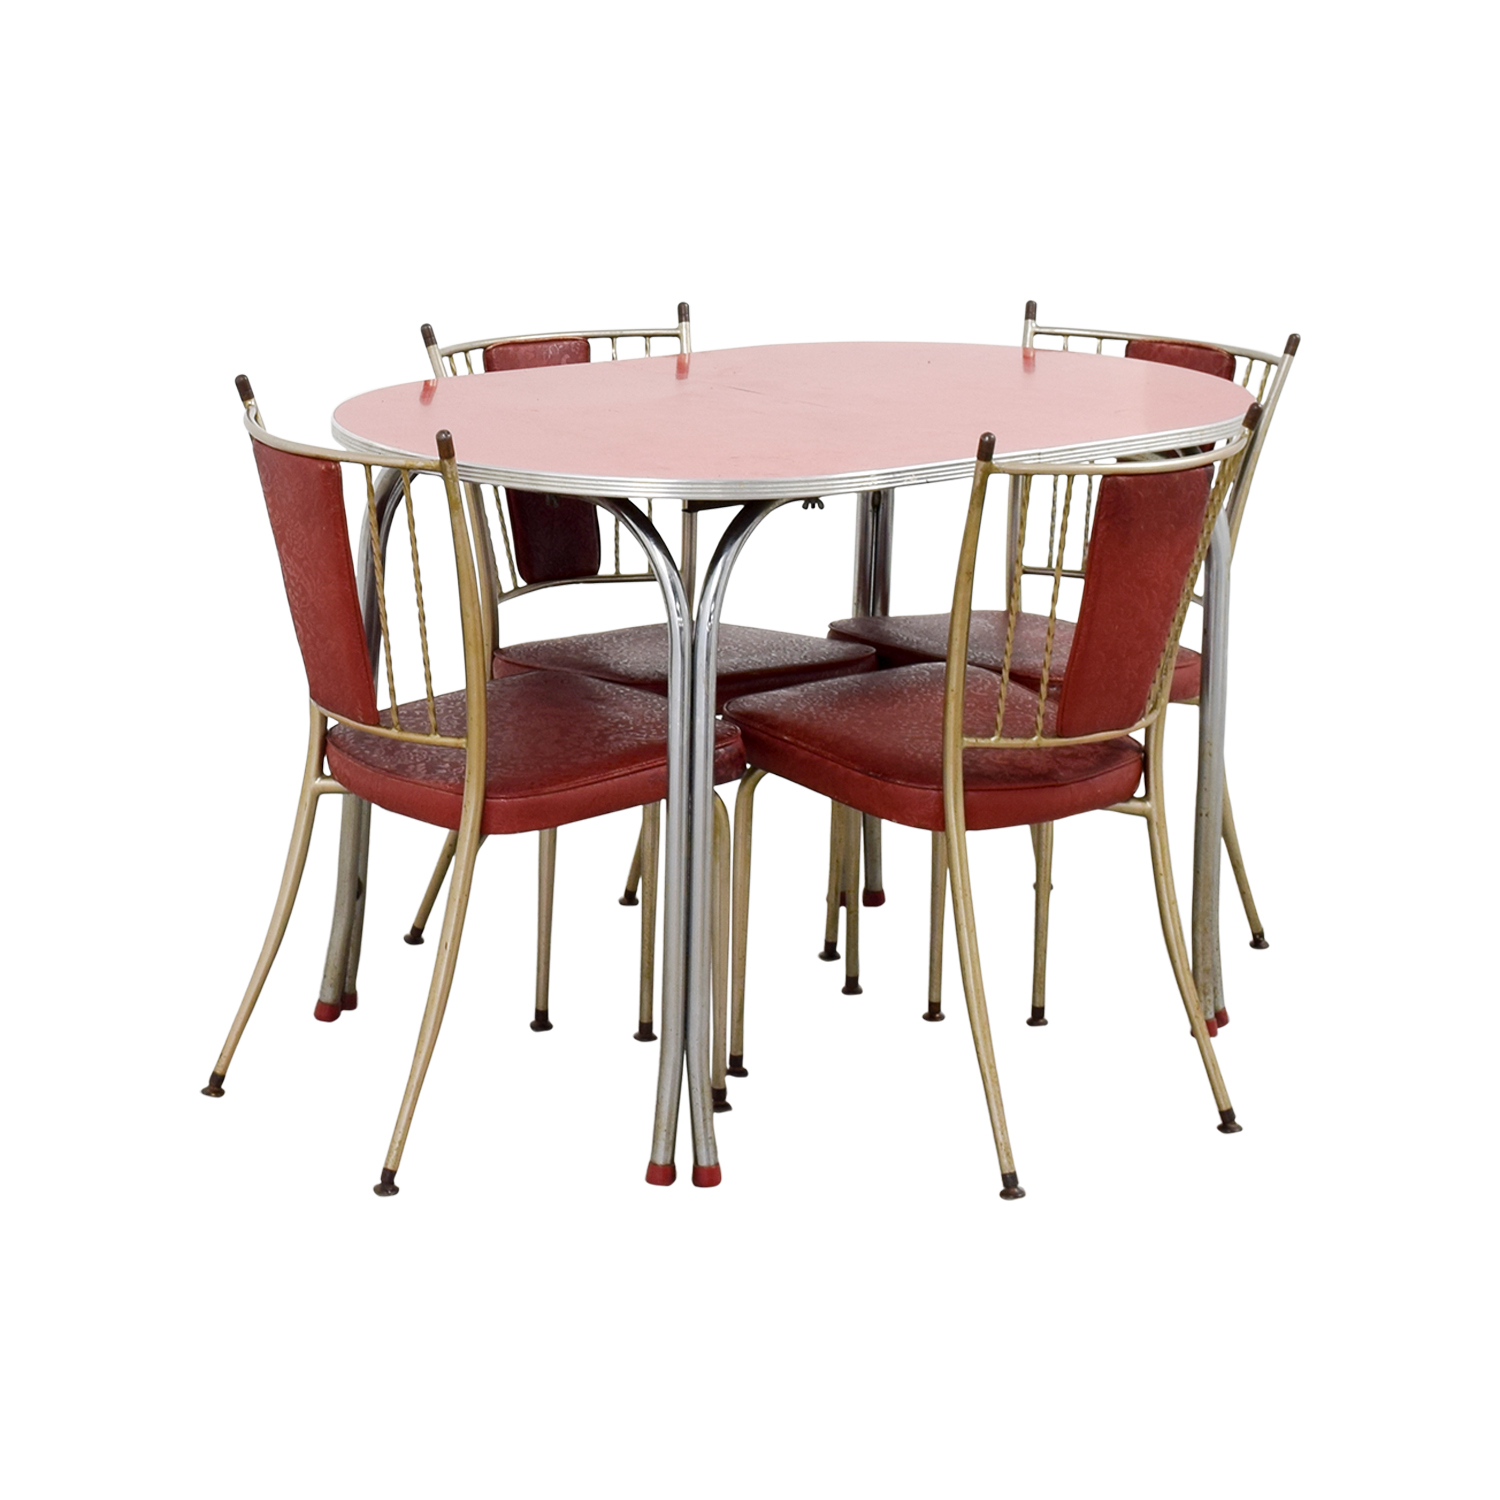 65 OFF Retro Red Dinette Set Tables : used retro red dinette set from furnishare.com size 1500 x 1500 jpeg 528kB